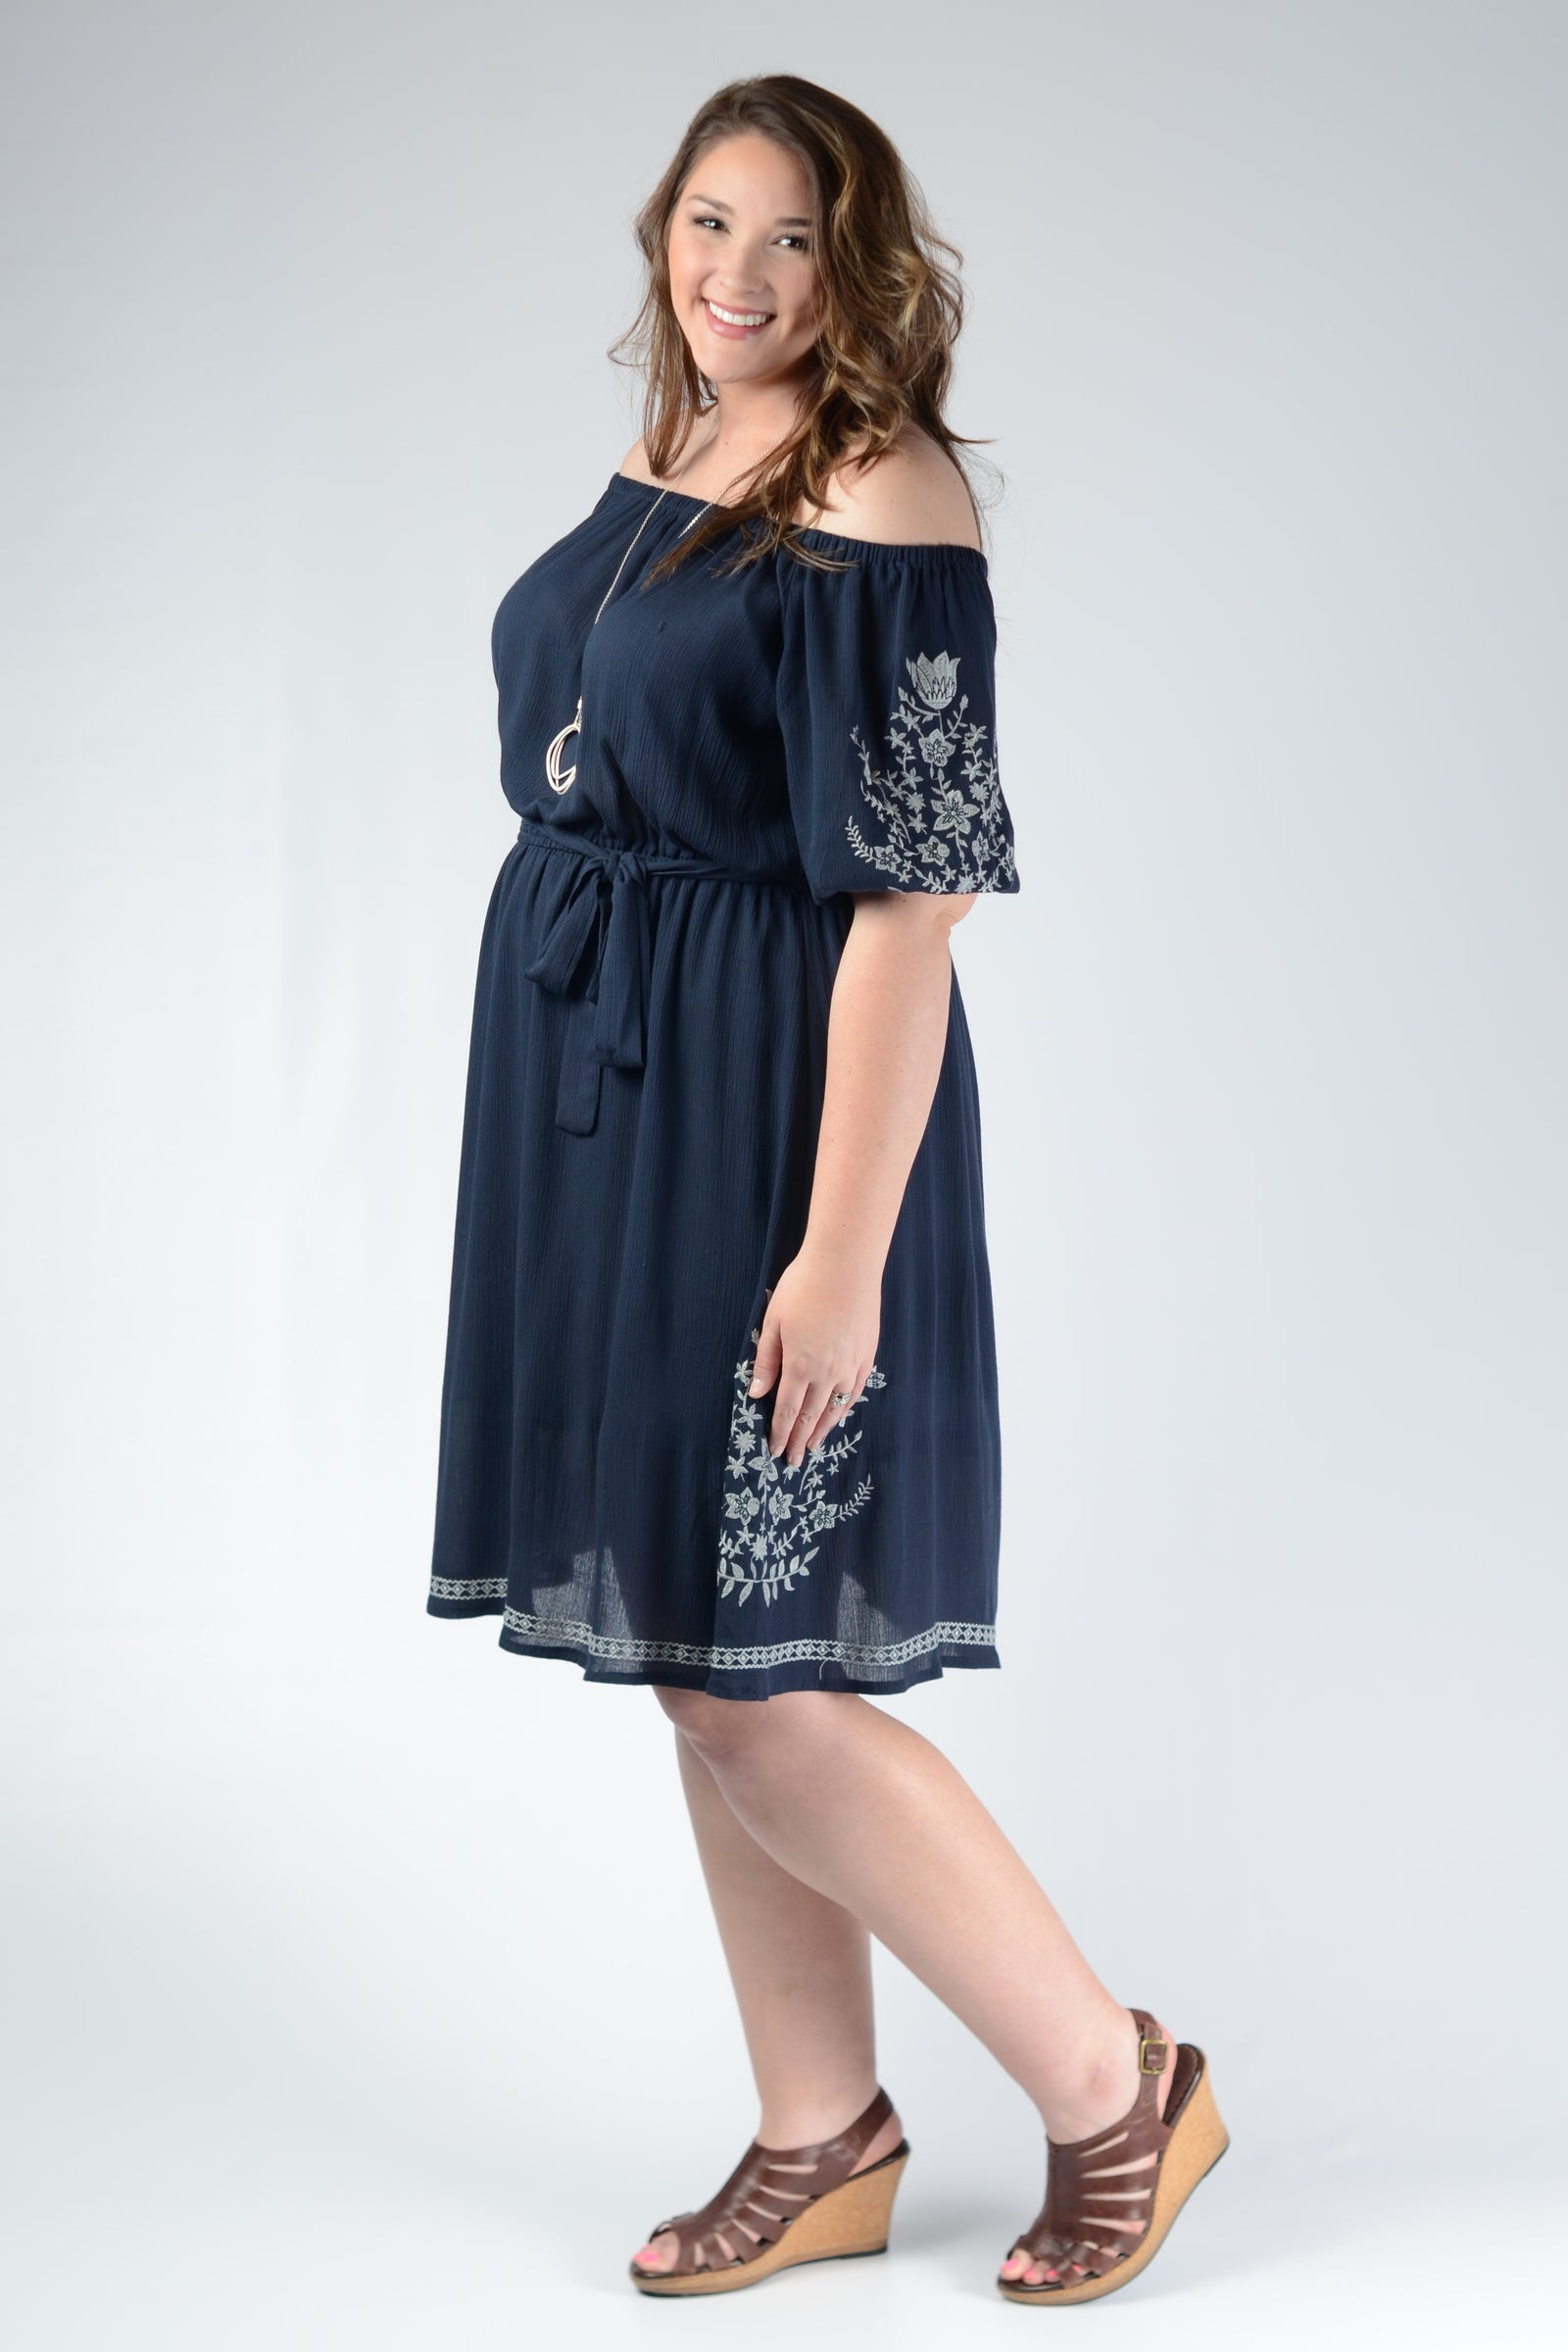 Navy Embroidered Dress - www.mycurvystore.com - Curvy Boutique - Plus Size